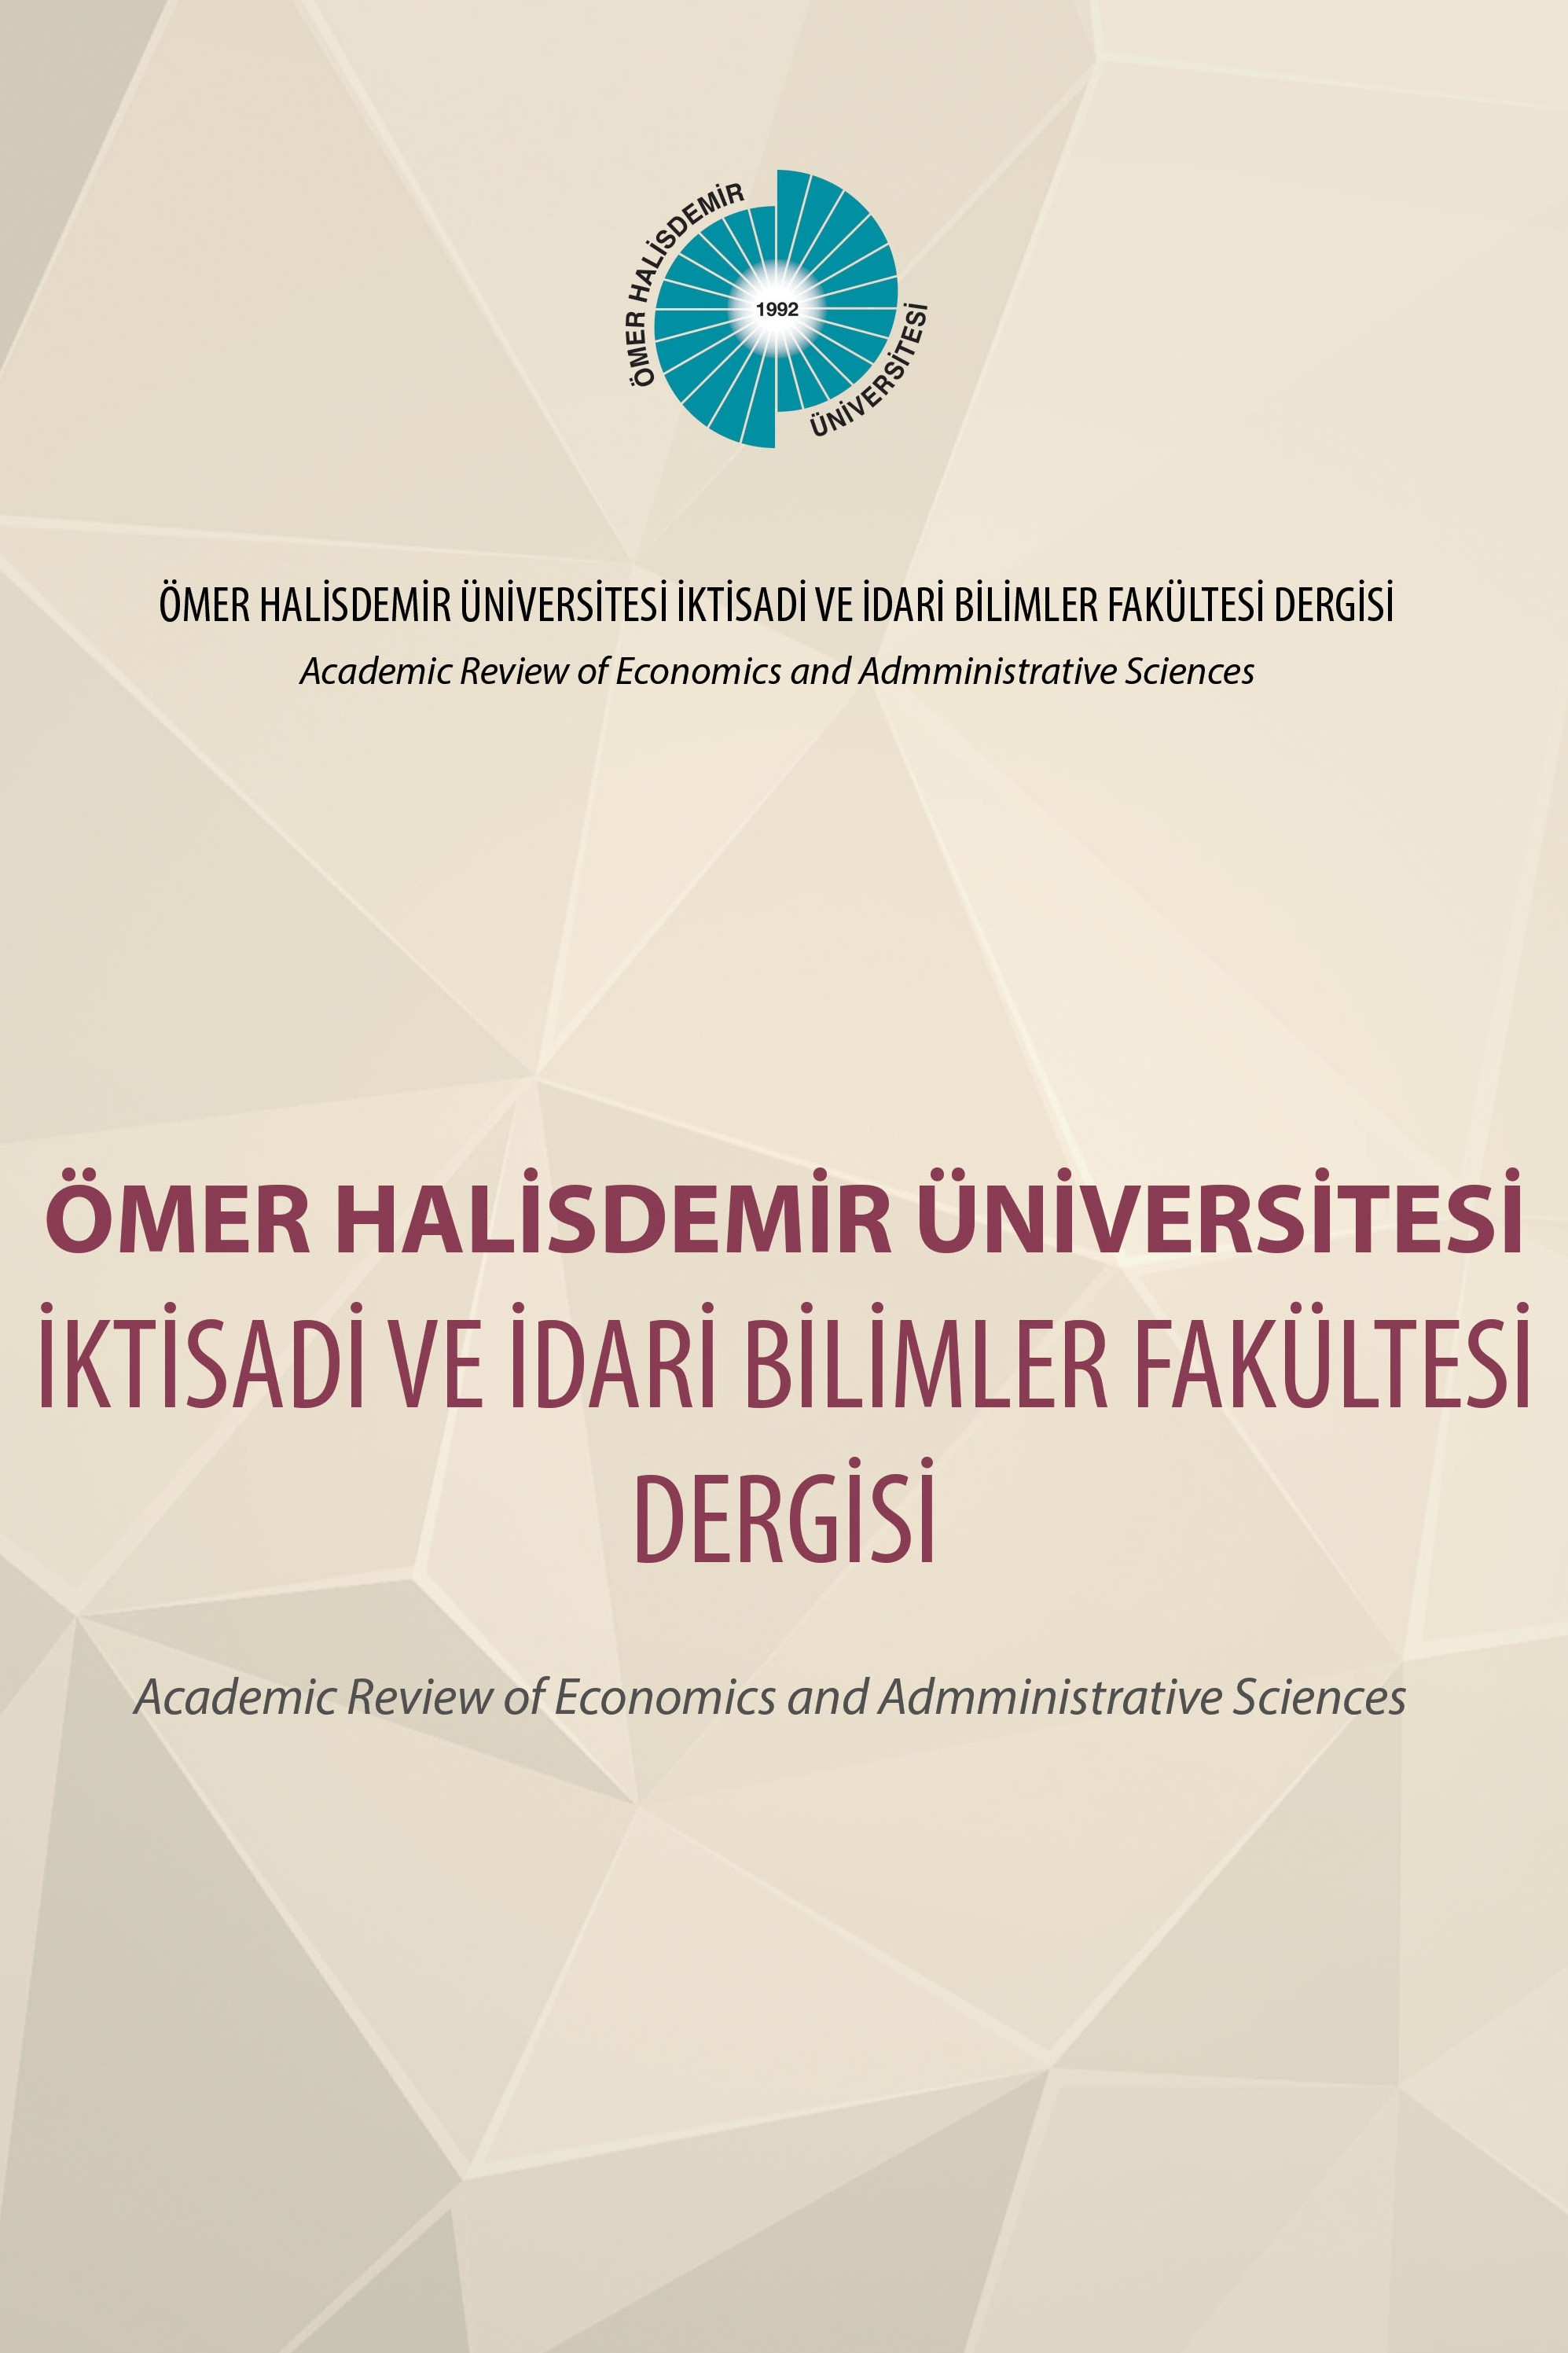 Academic Review of Economics and Administrative Sciences